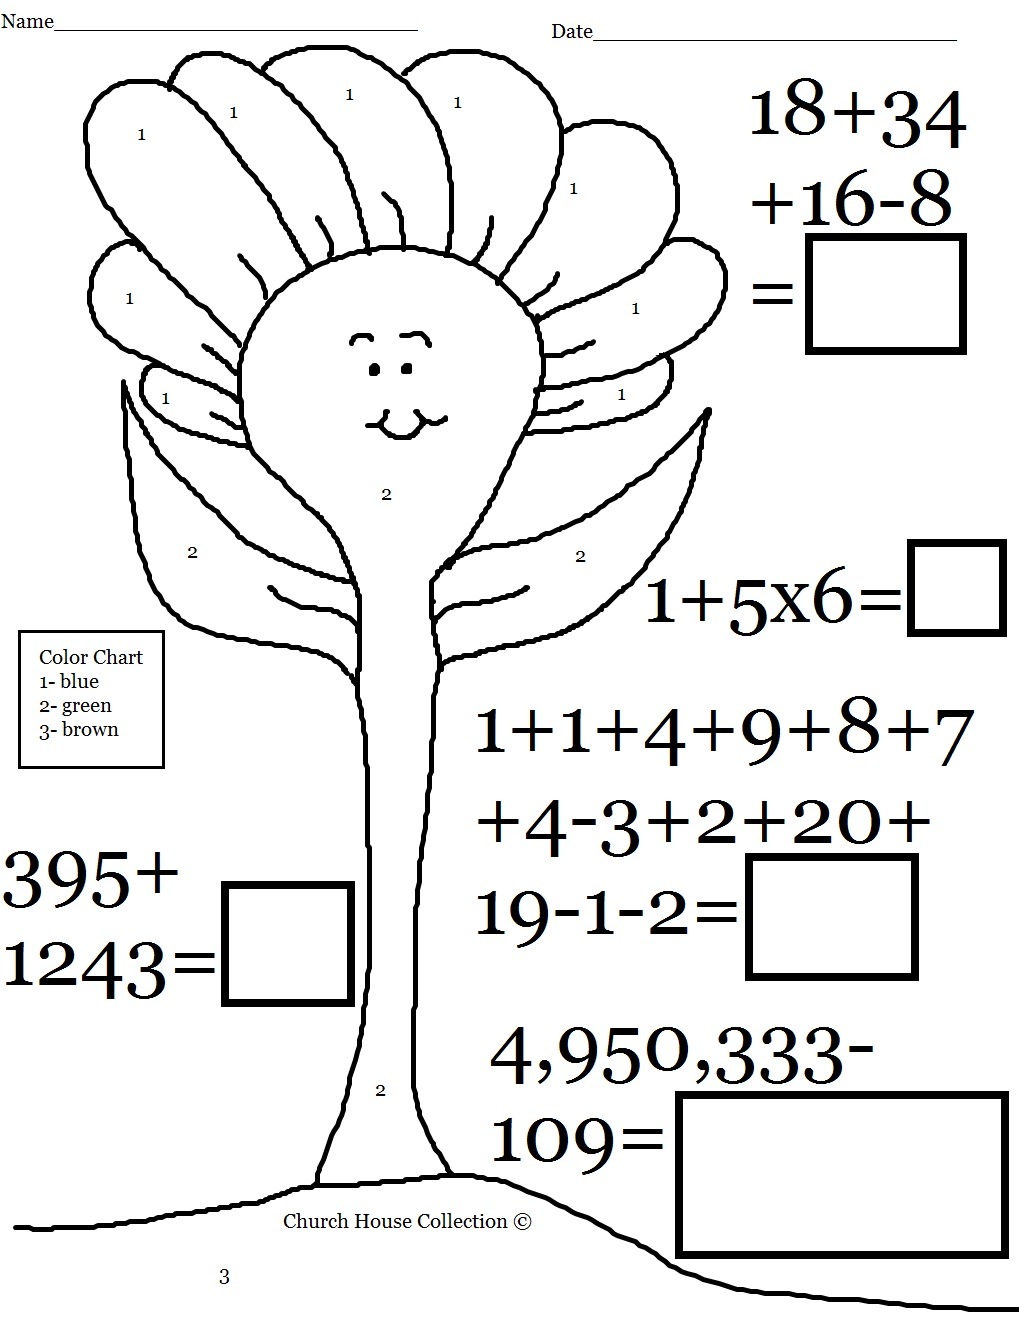 Printable coloring pages with math problems -  Fun Color By Number And Math Problems Worksheet Fun Coloring Math Worksheets